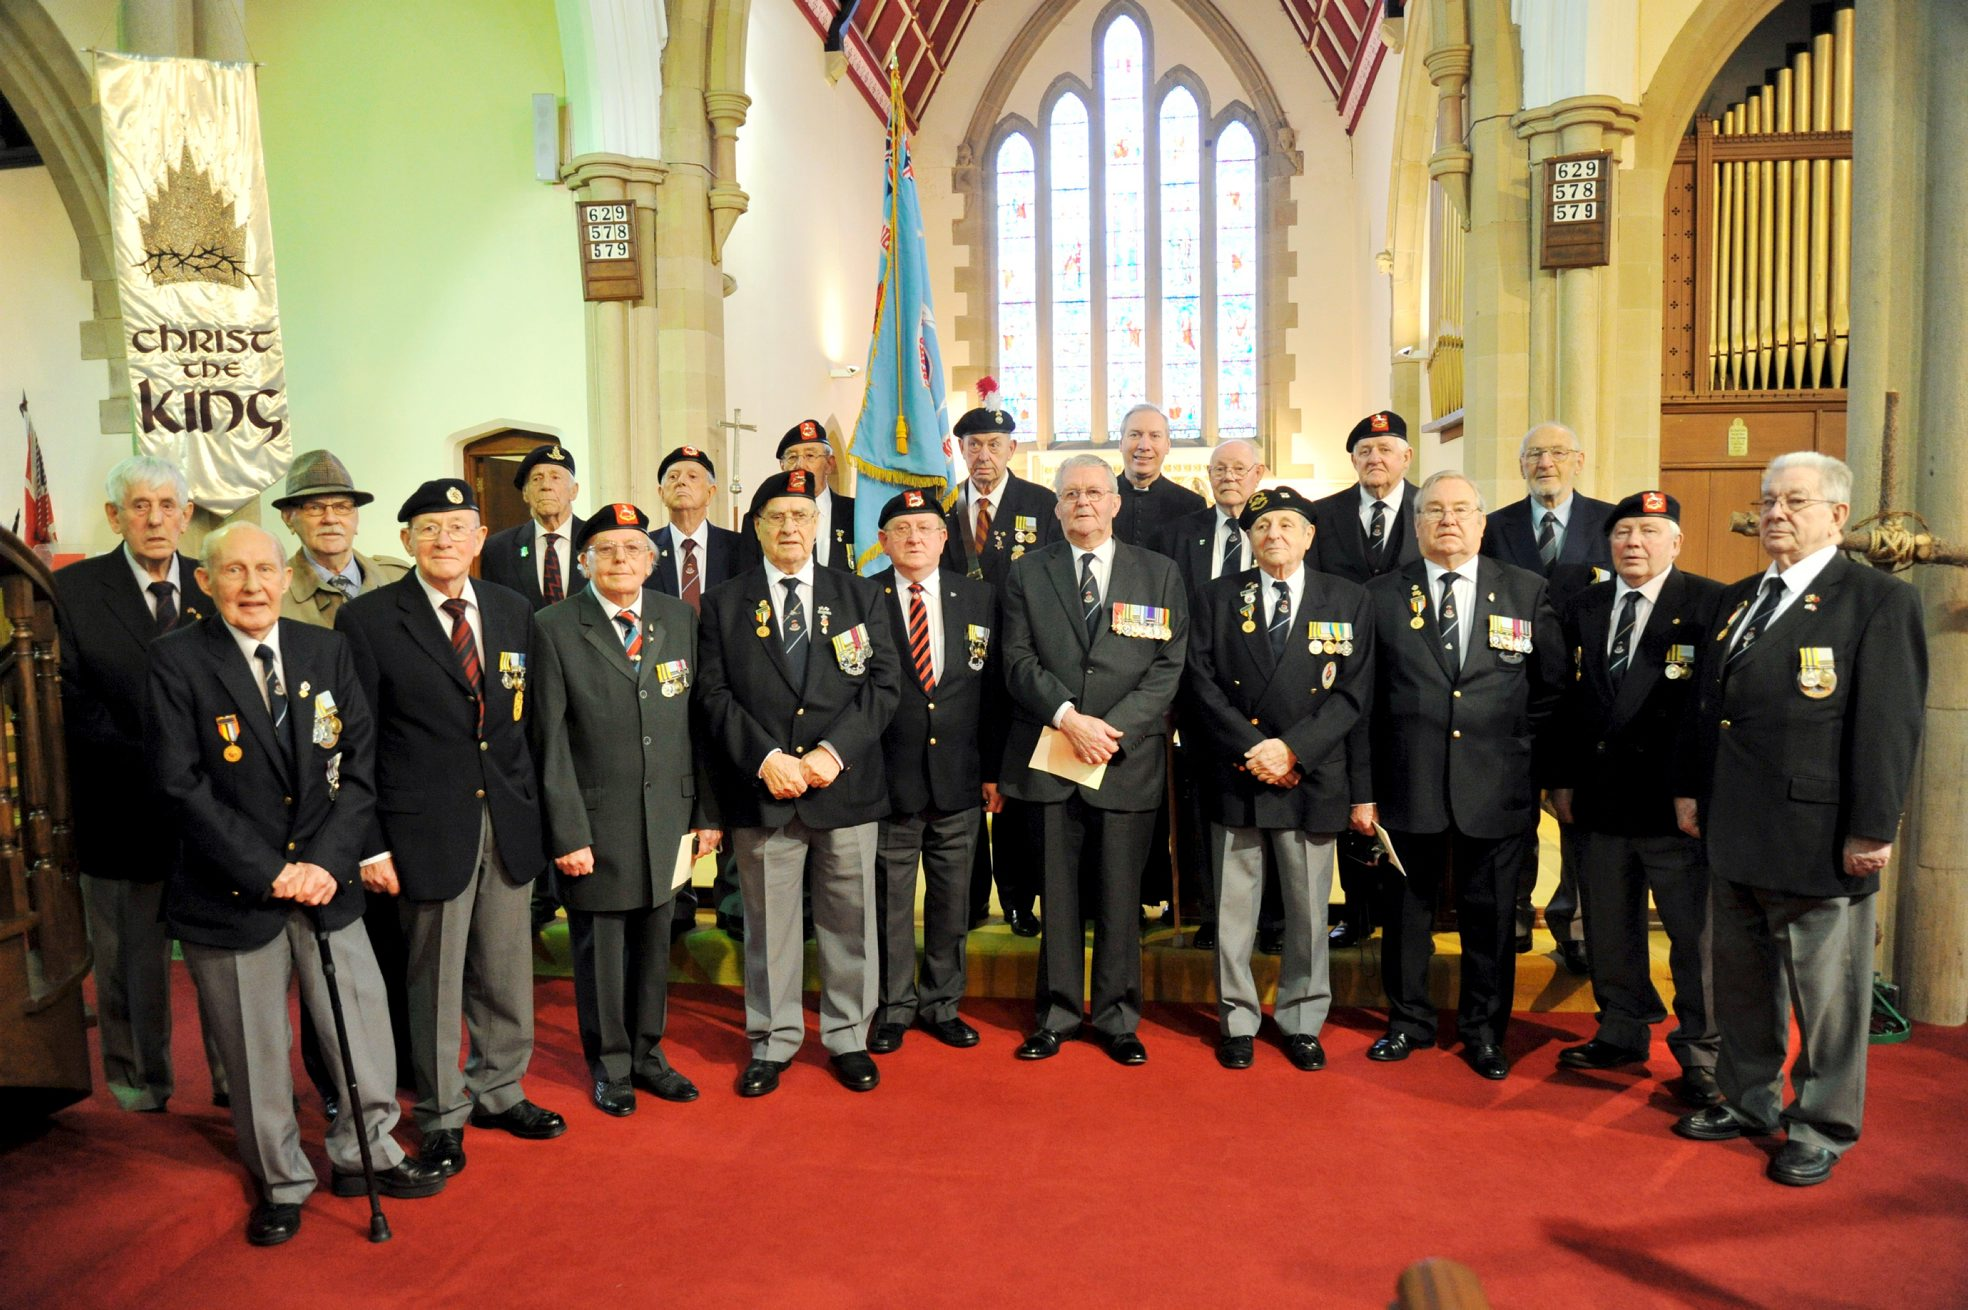 Members of the British Korean Veterans' Association Greater Manchester branch at Christ Church Egerton